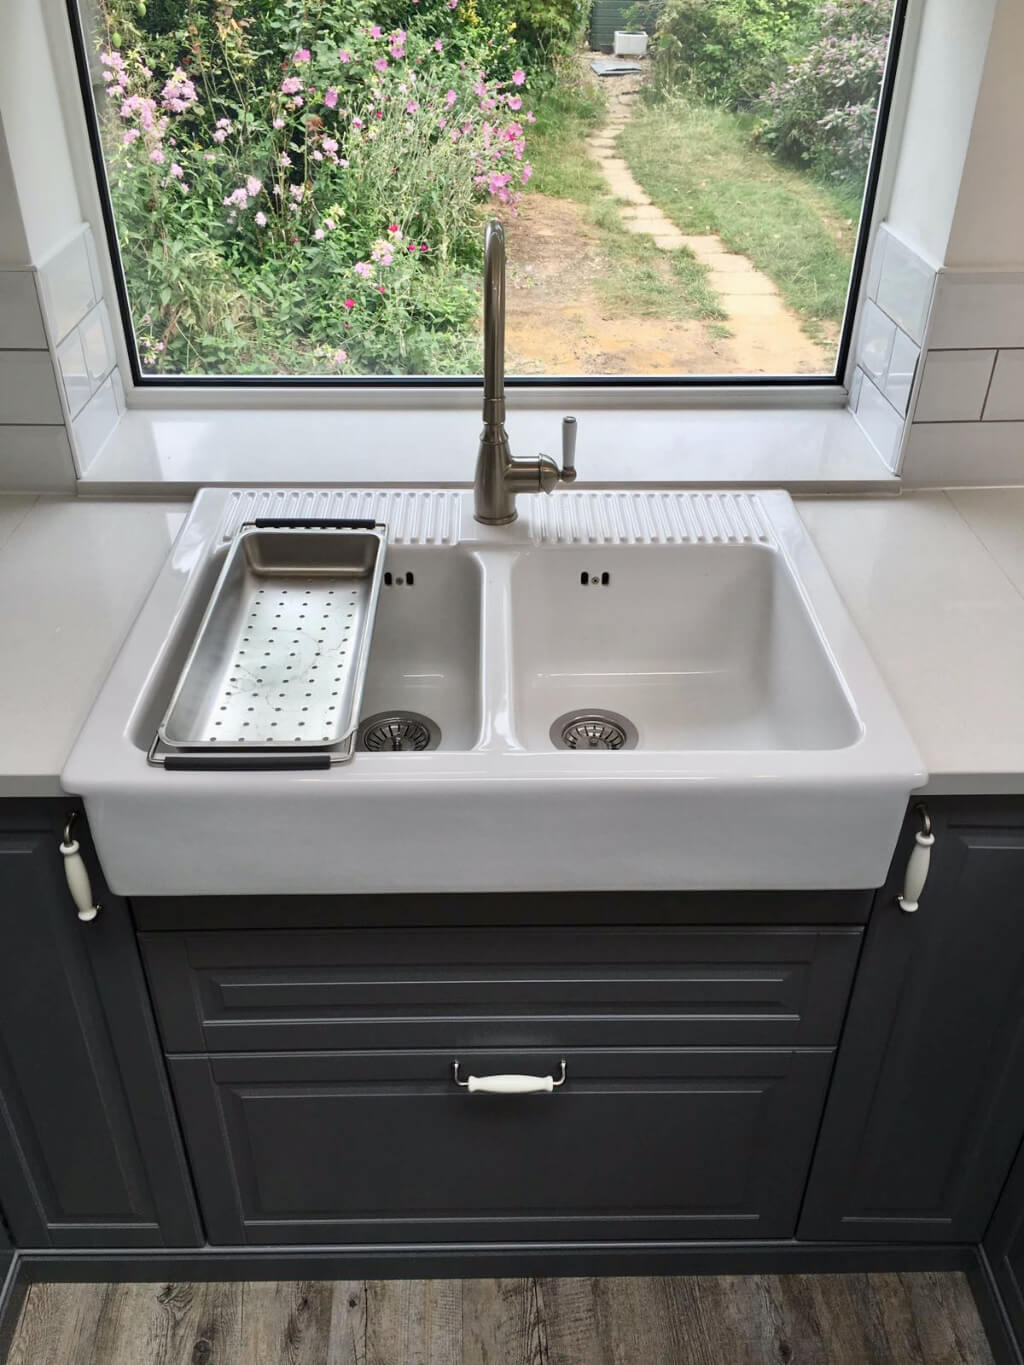 King's Construction | Ground Floor Extension - Kitchen Sink | Lee Green, South London